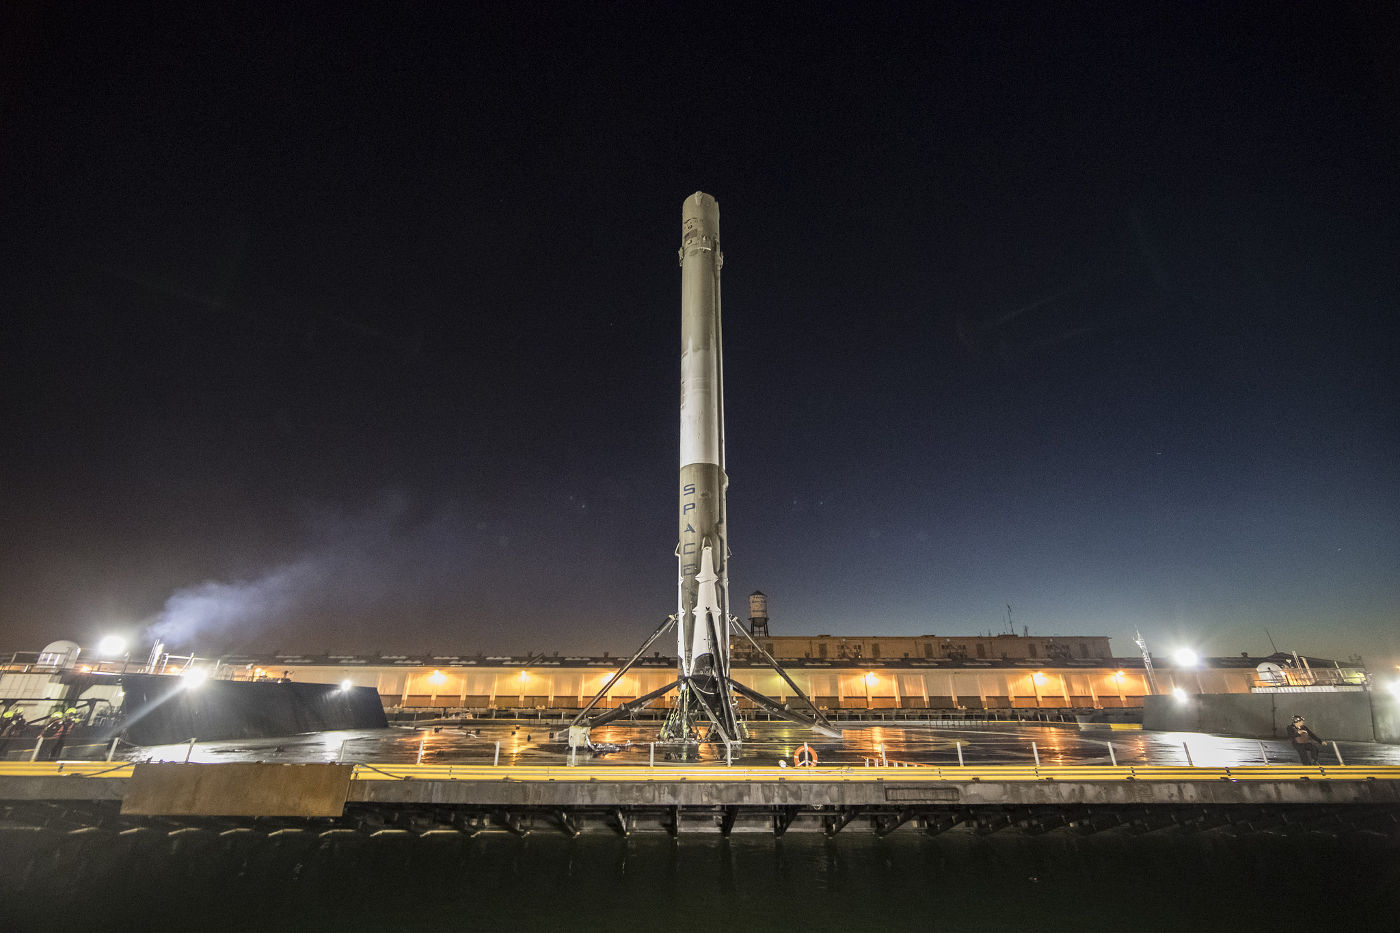 SpaceX is going to launch a rocket every two weeks